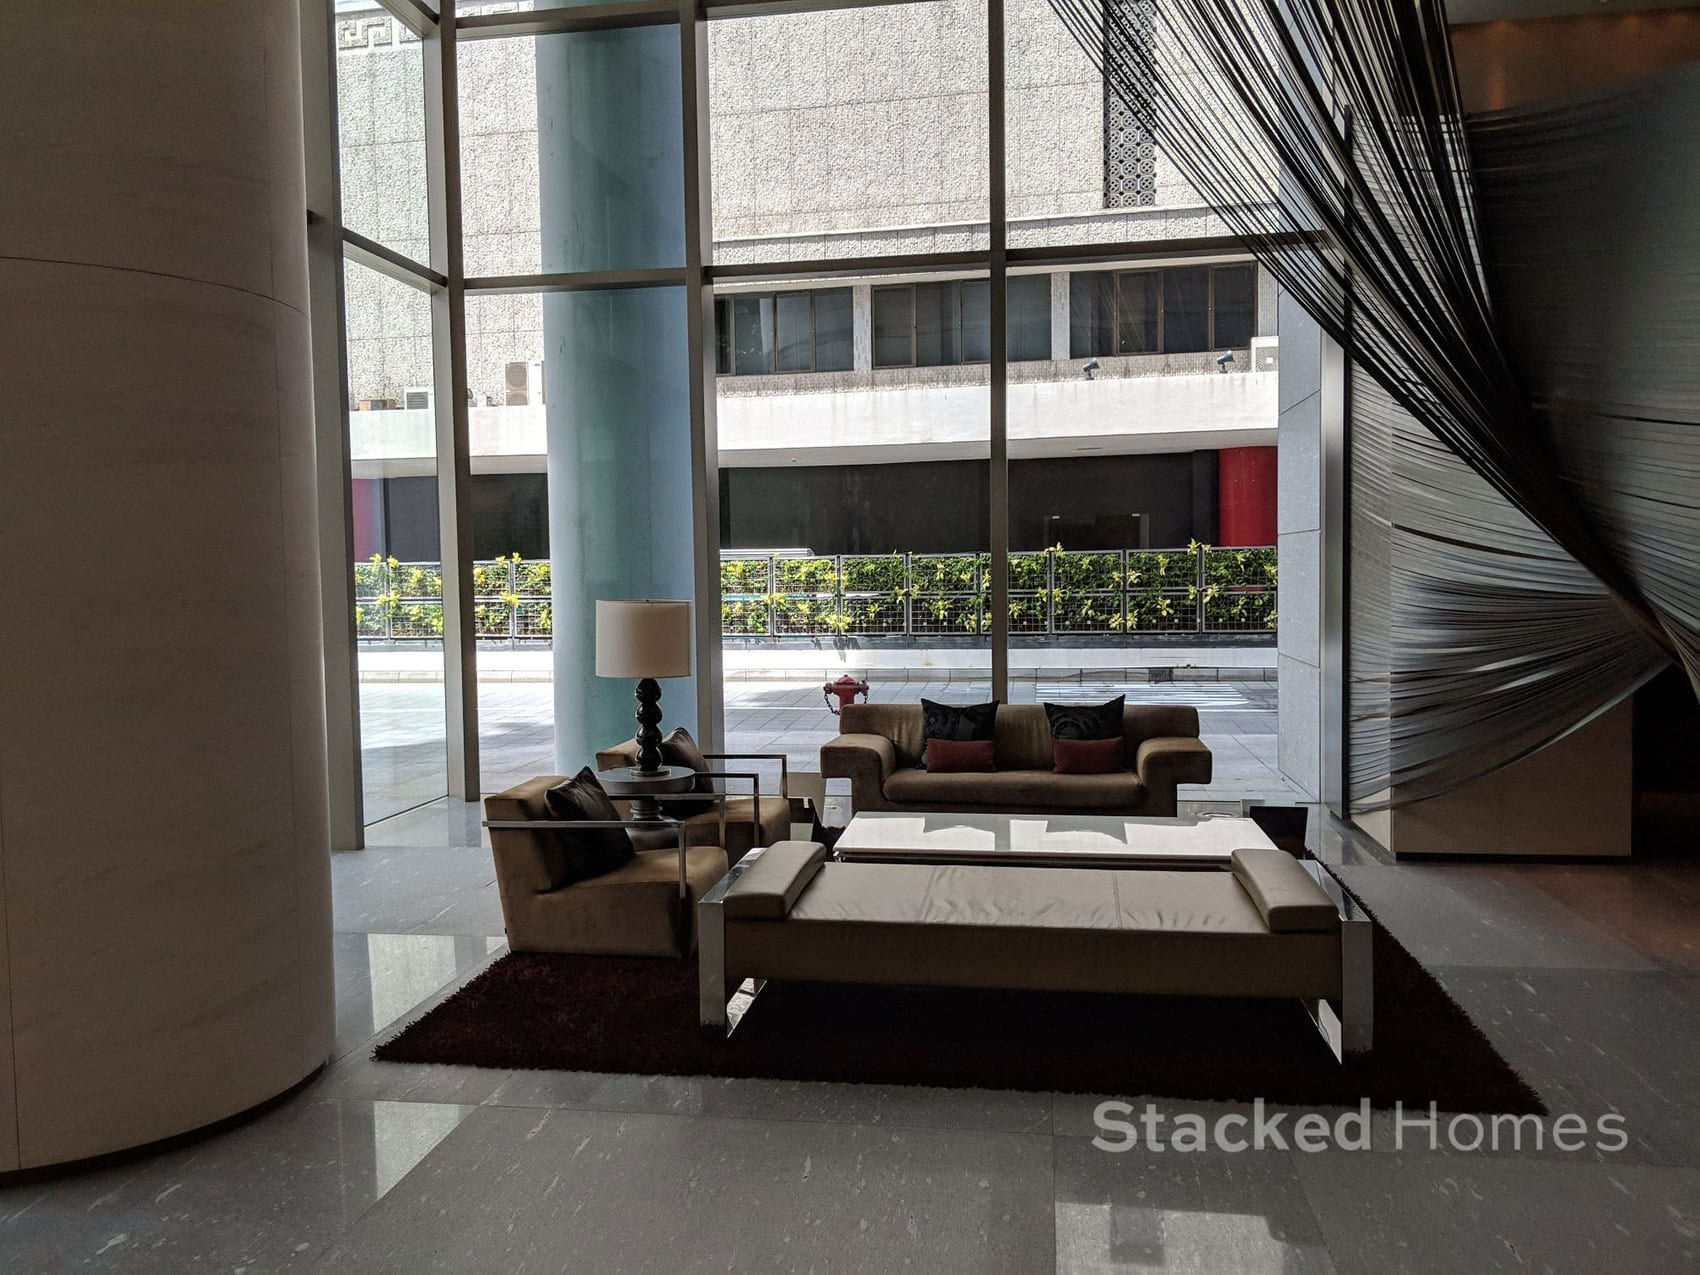 scotts square condo lobby